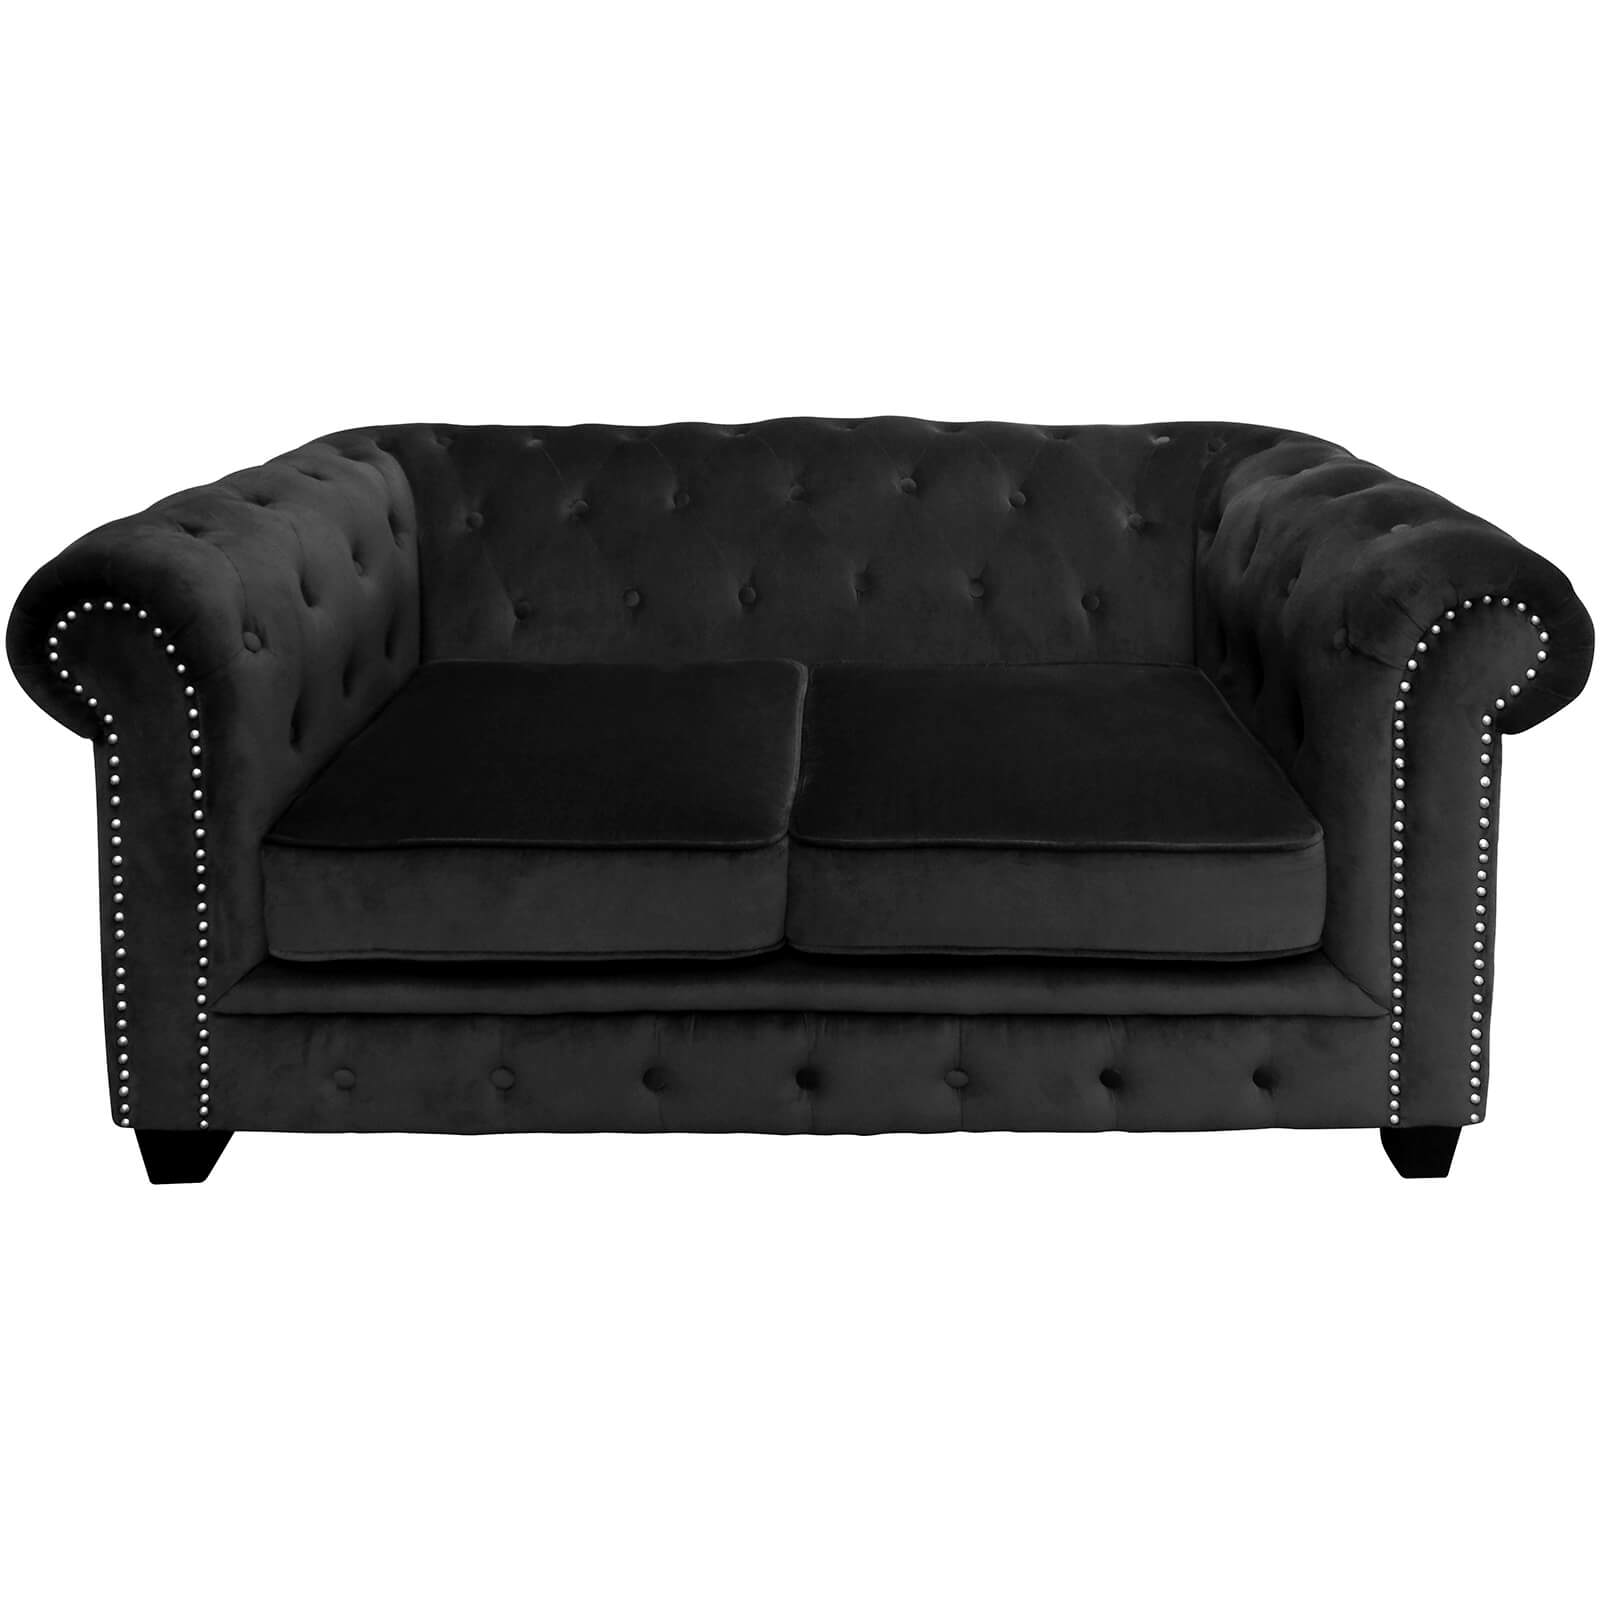 Regents Park Chesterfield Two Seater Sofa - Black Cotton Velvet